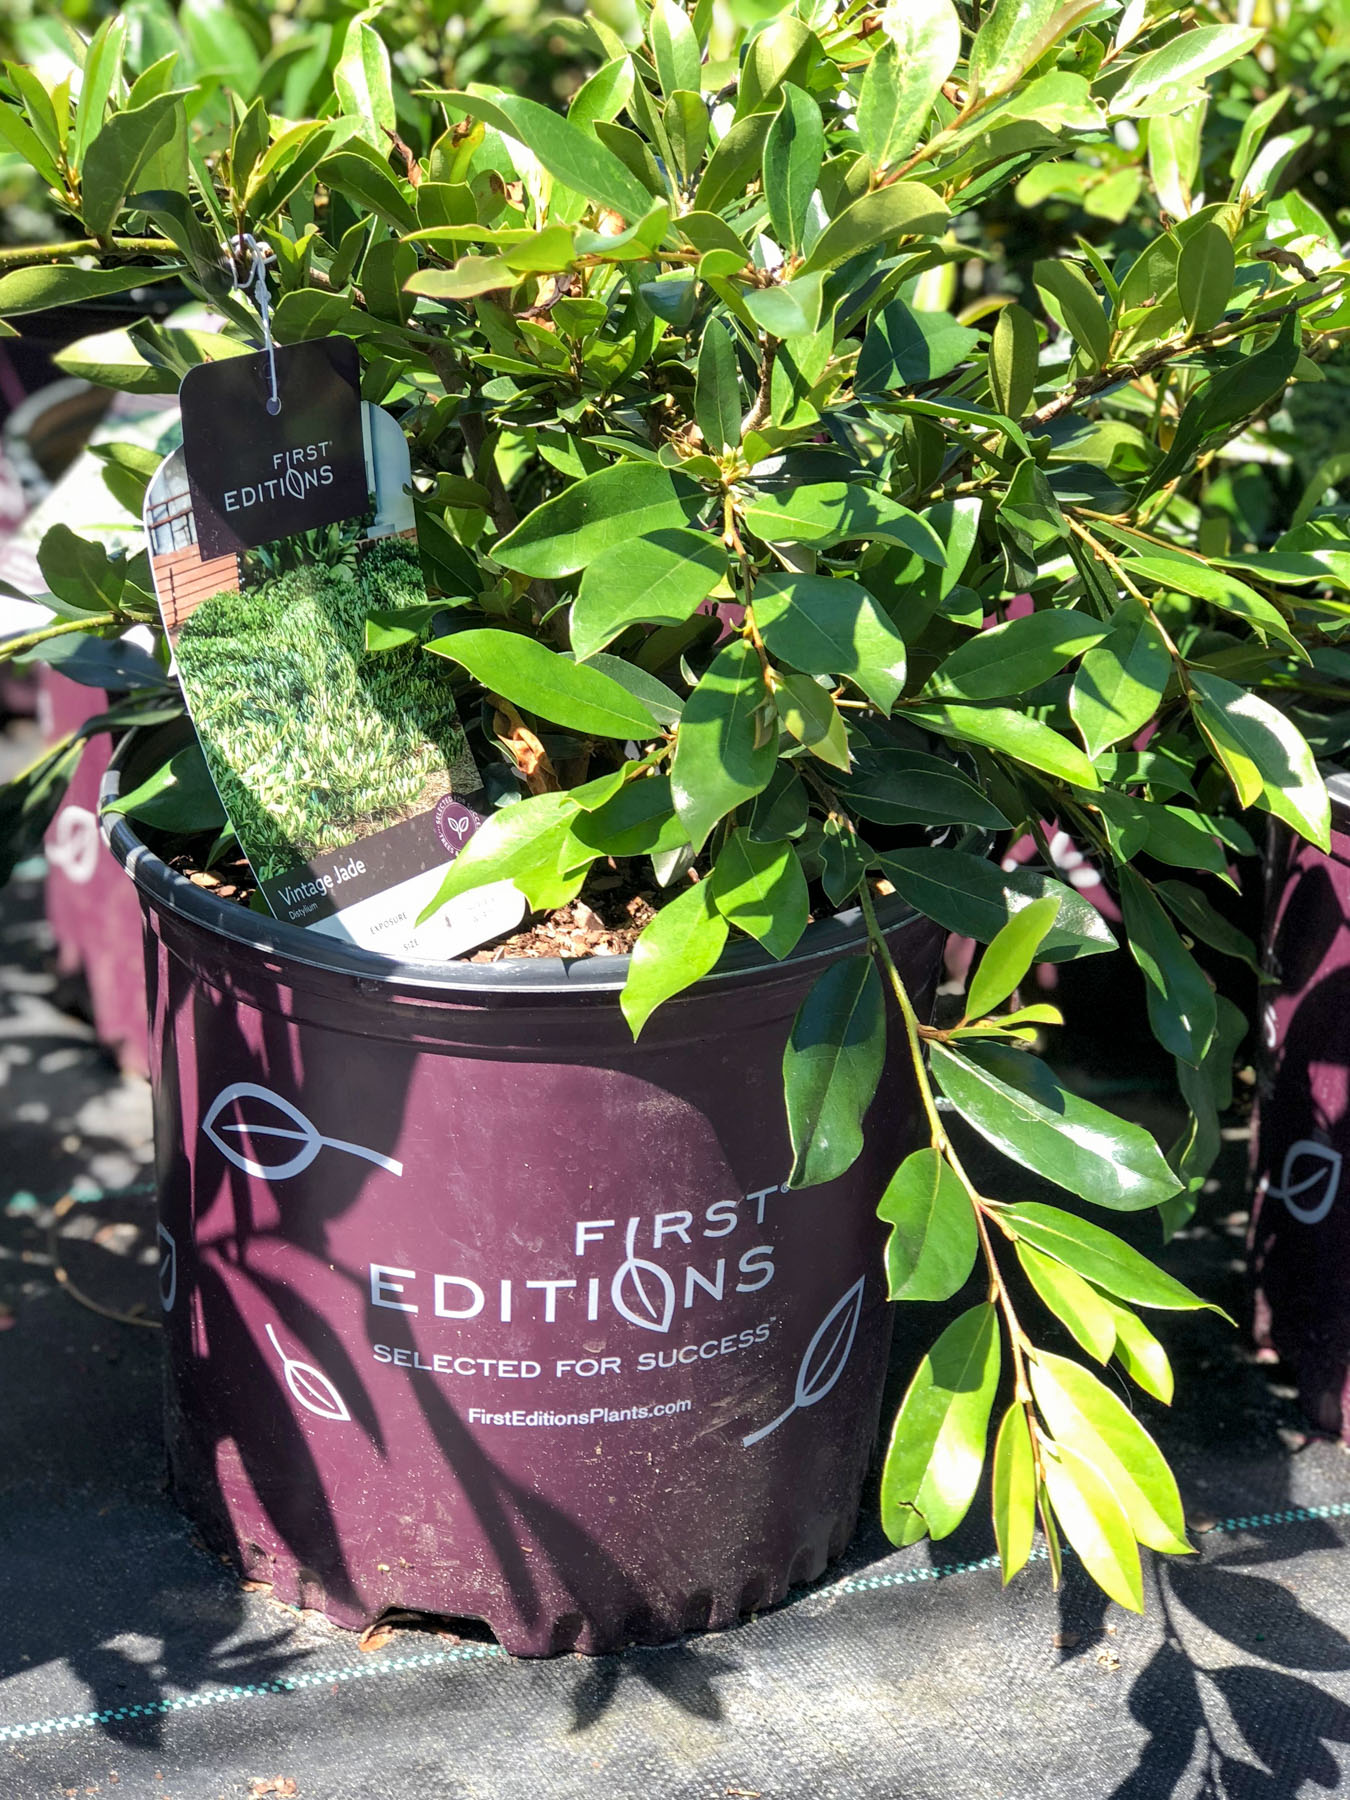 Vintage Jade Distylium in First Editions purple pot; a great plant to use in your landscape in the South